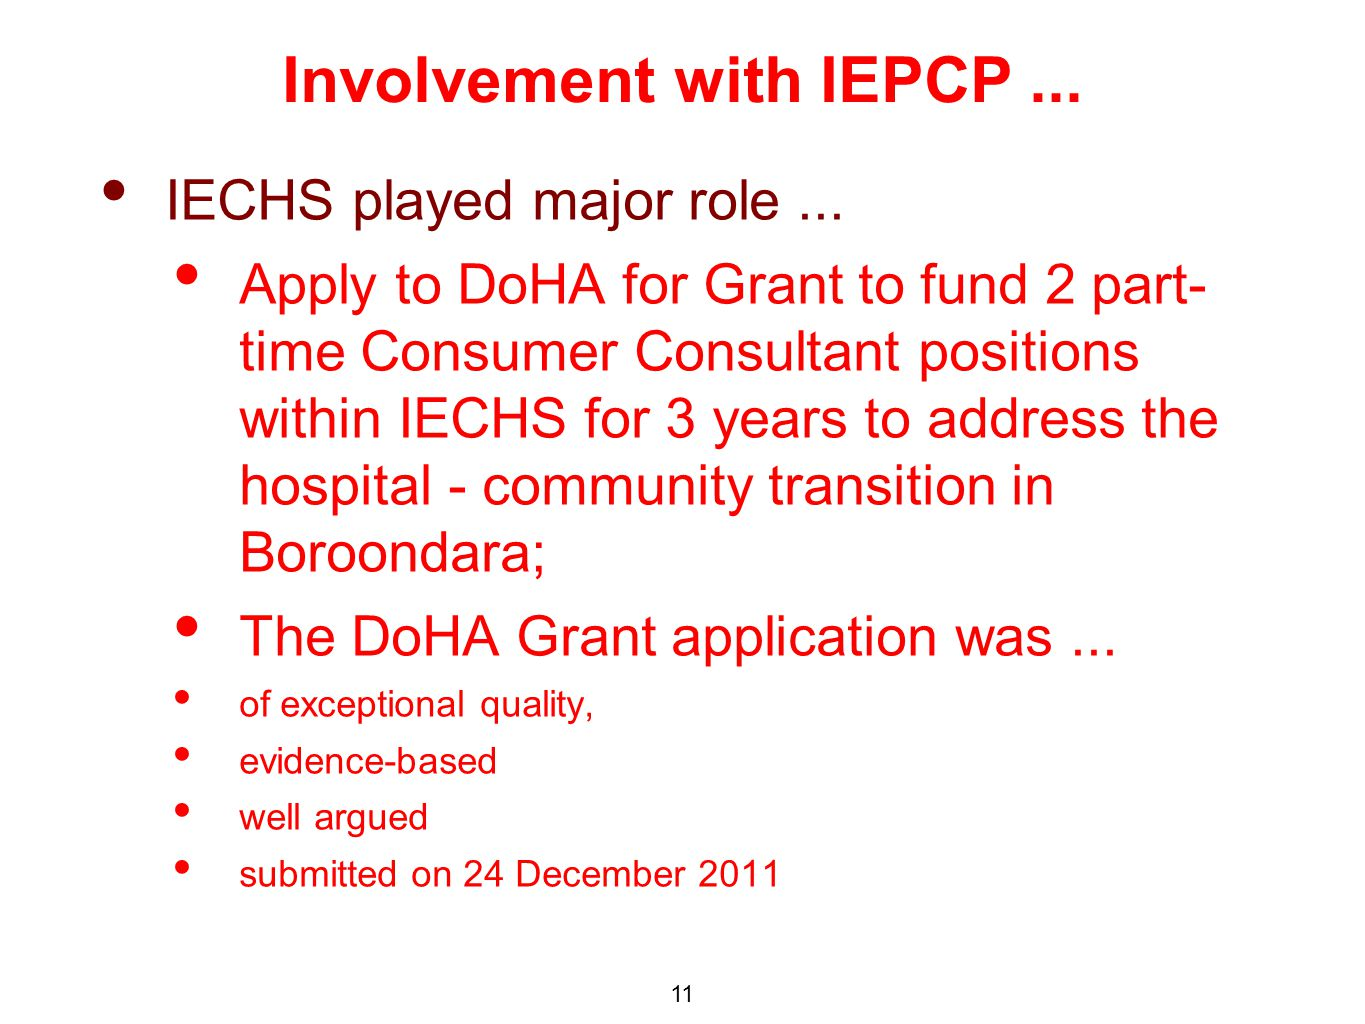 IECHS played major role...